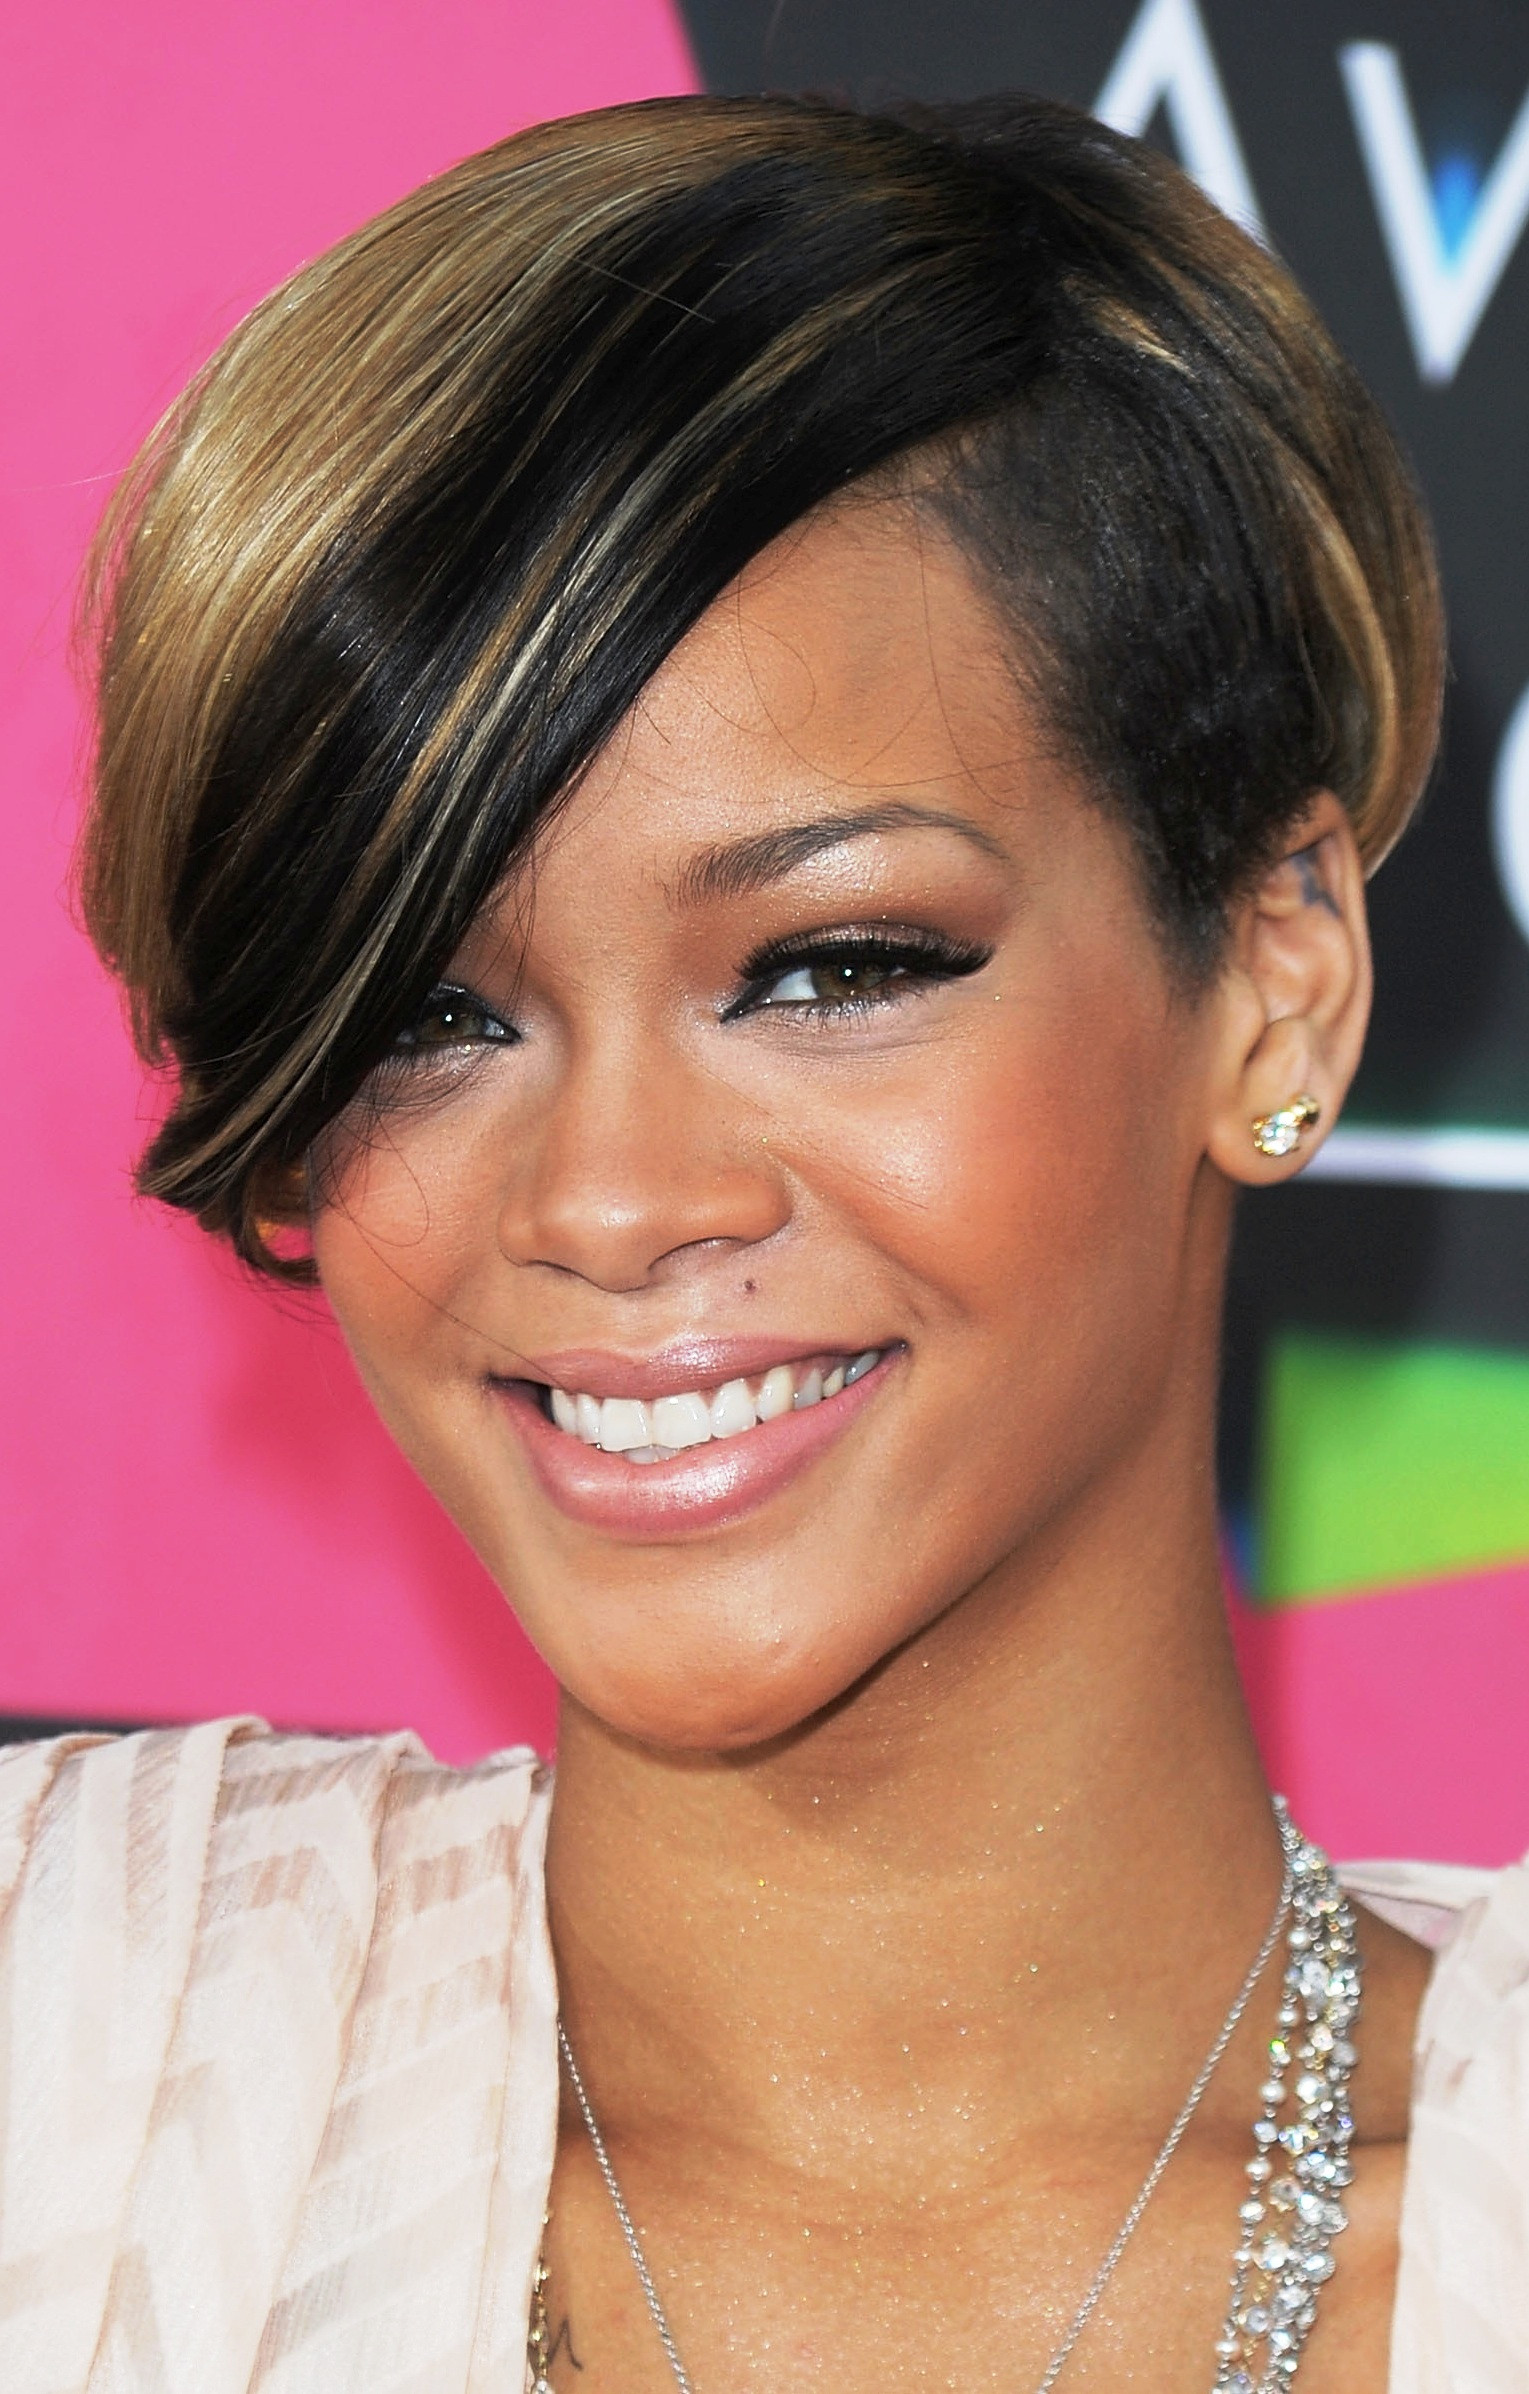 Best ideas about Hairstyles For Short Hair For Girls . Save or Pin 30 Short Hairstyles Ideas for Women Elle Hairstyles Now.